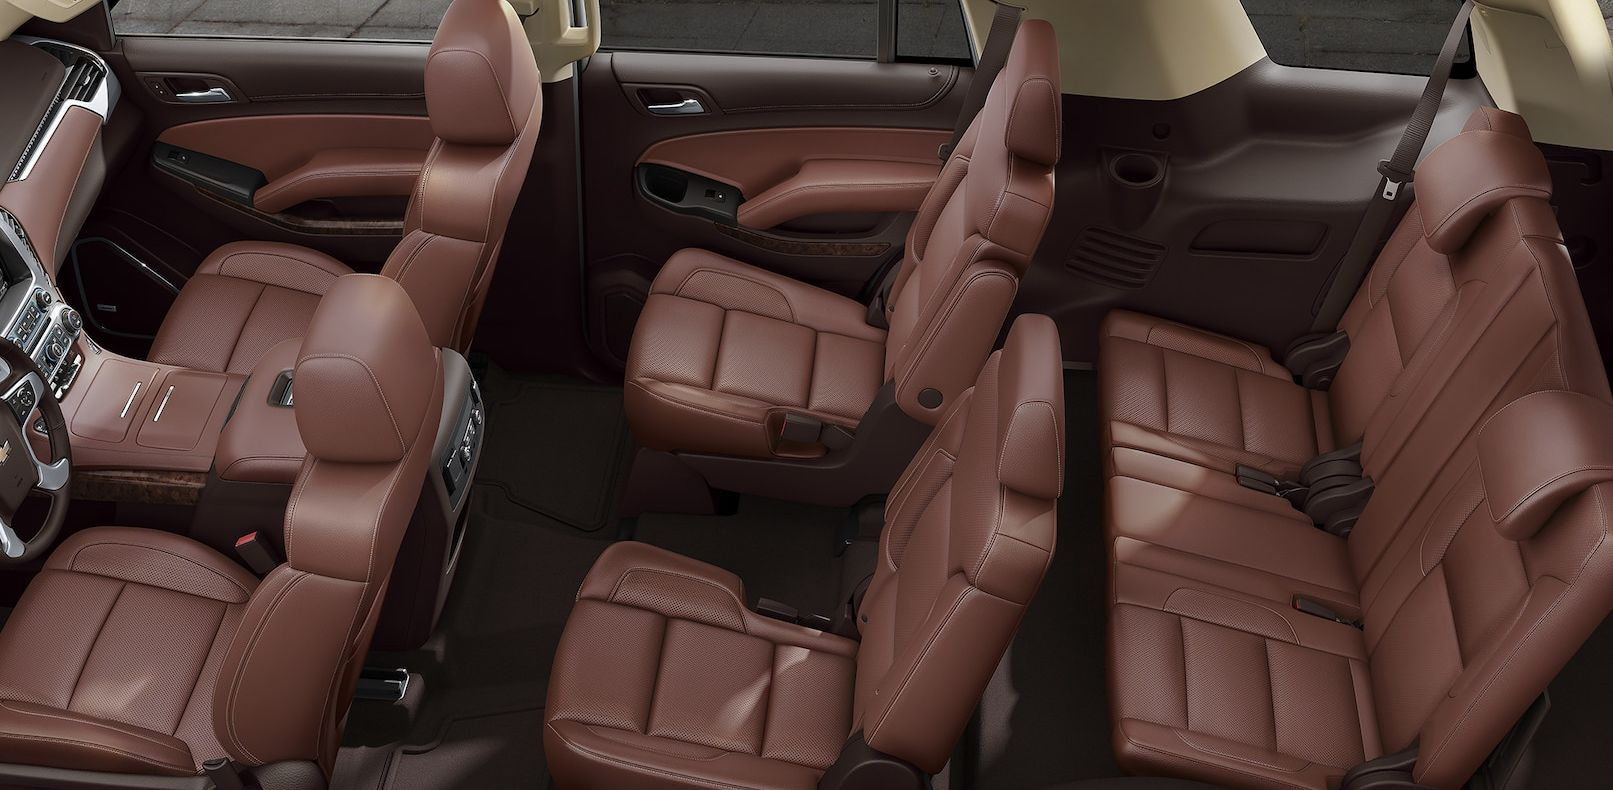 Seating in the Chevy Tahoe